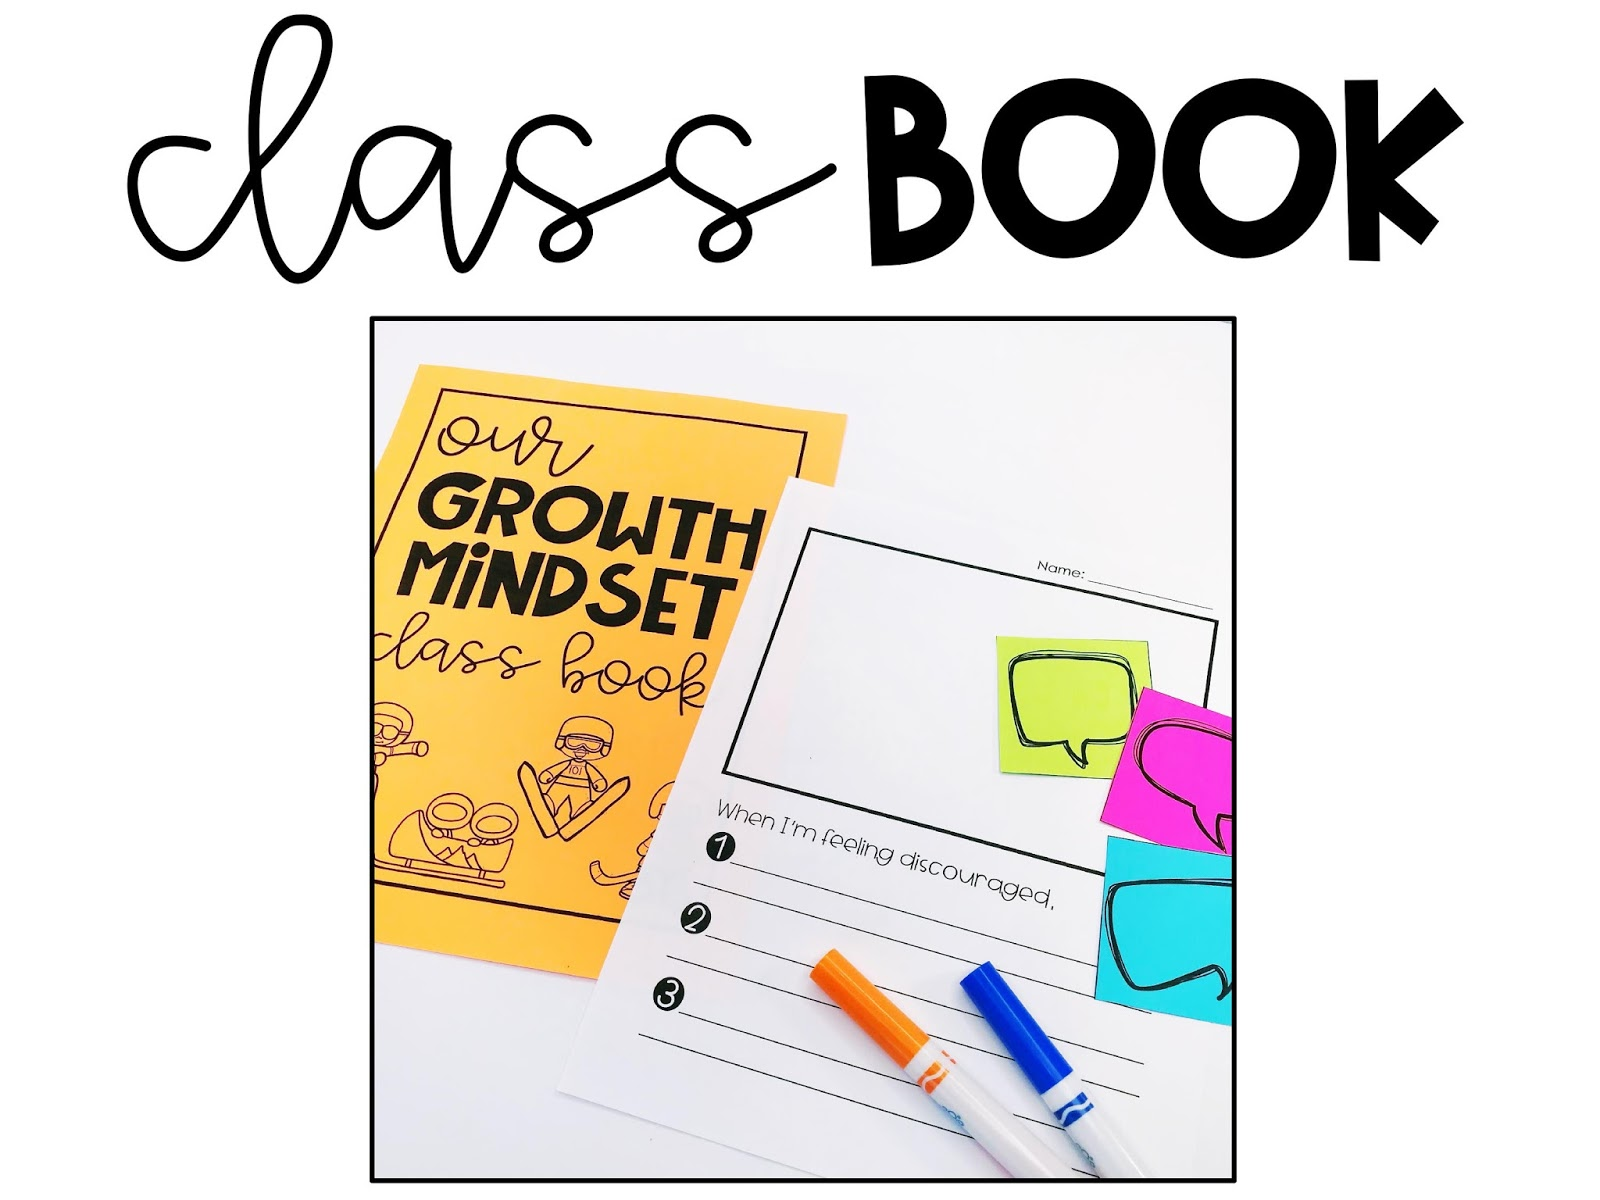 Growth mindset change the games all students can shine they will create a class book make cute athlete hats and work together to assemble a growth mindset anchor chart nvjuhfo Images